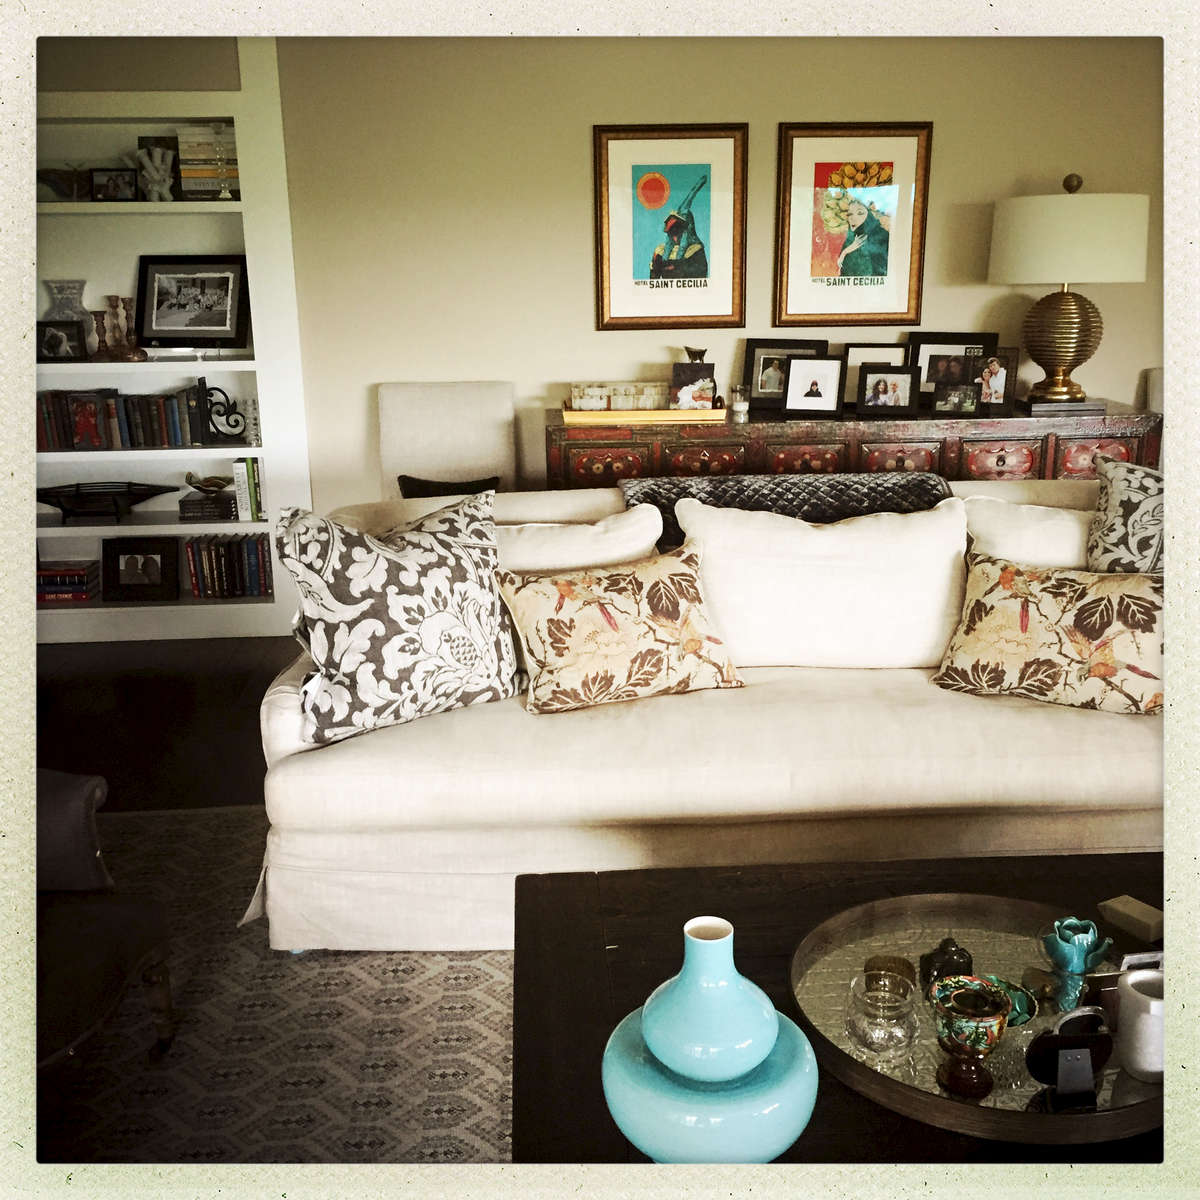 I provided a new layout for the room, new pillows, rug, and blankets.  The artwork was reframed to celebrate an Austin institution, while the lamp was a local find.